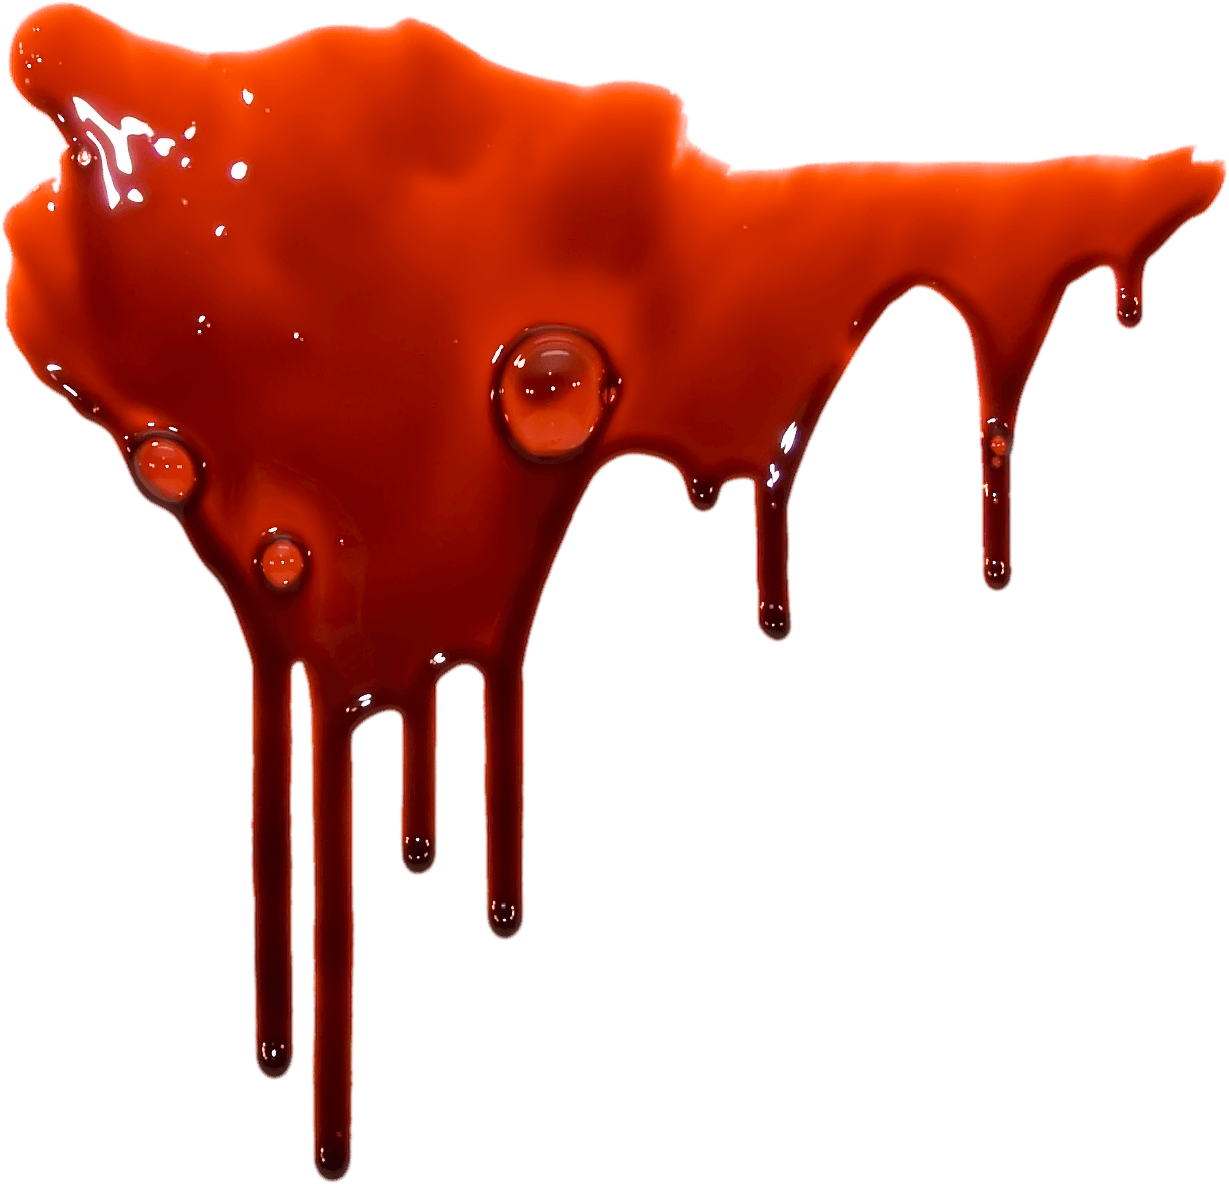 Dripping Blood PNG - 170428